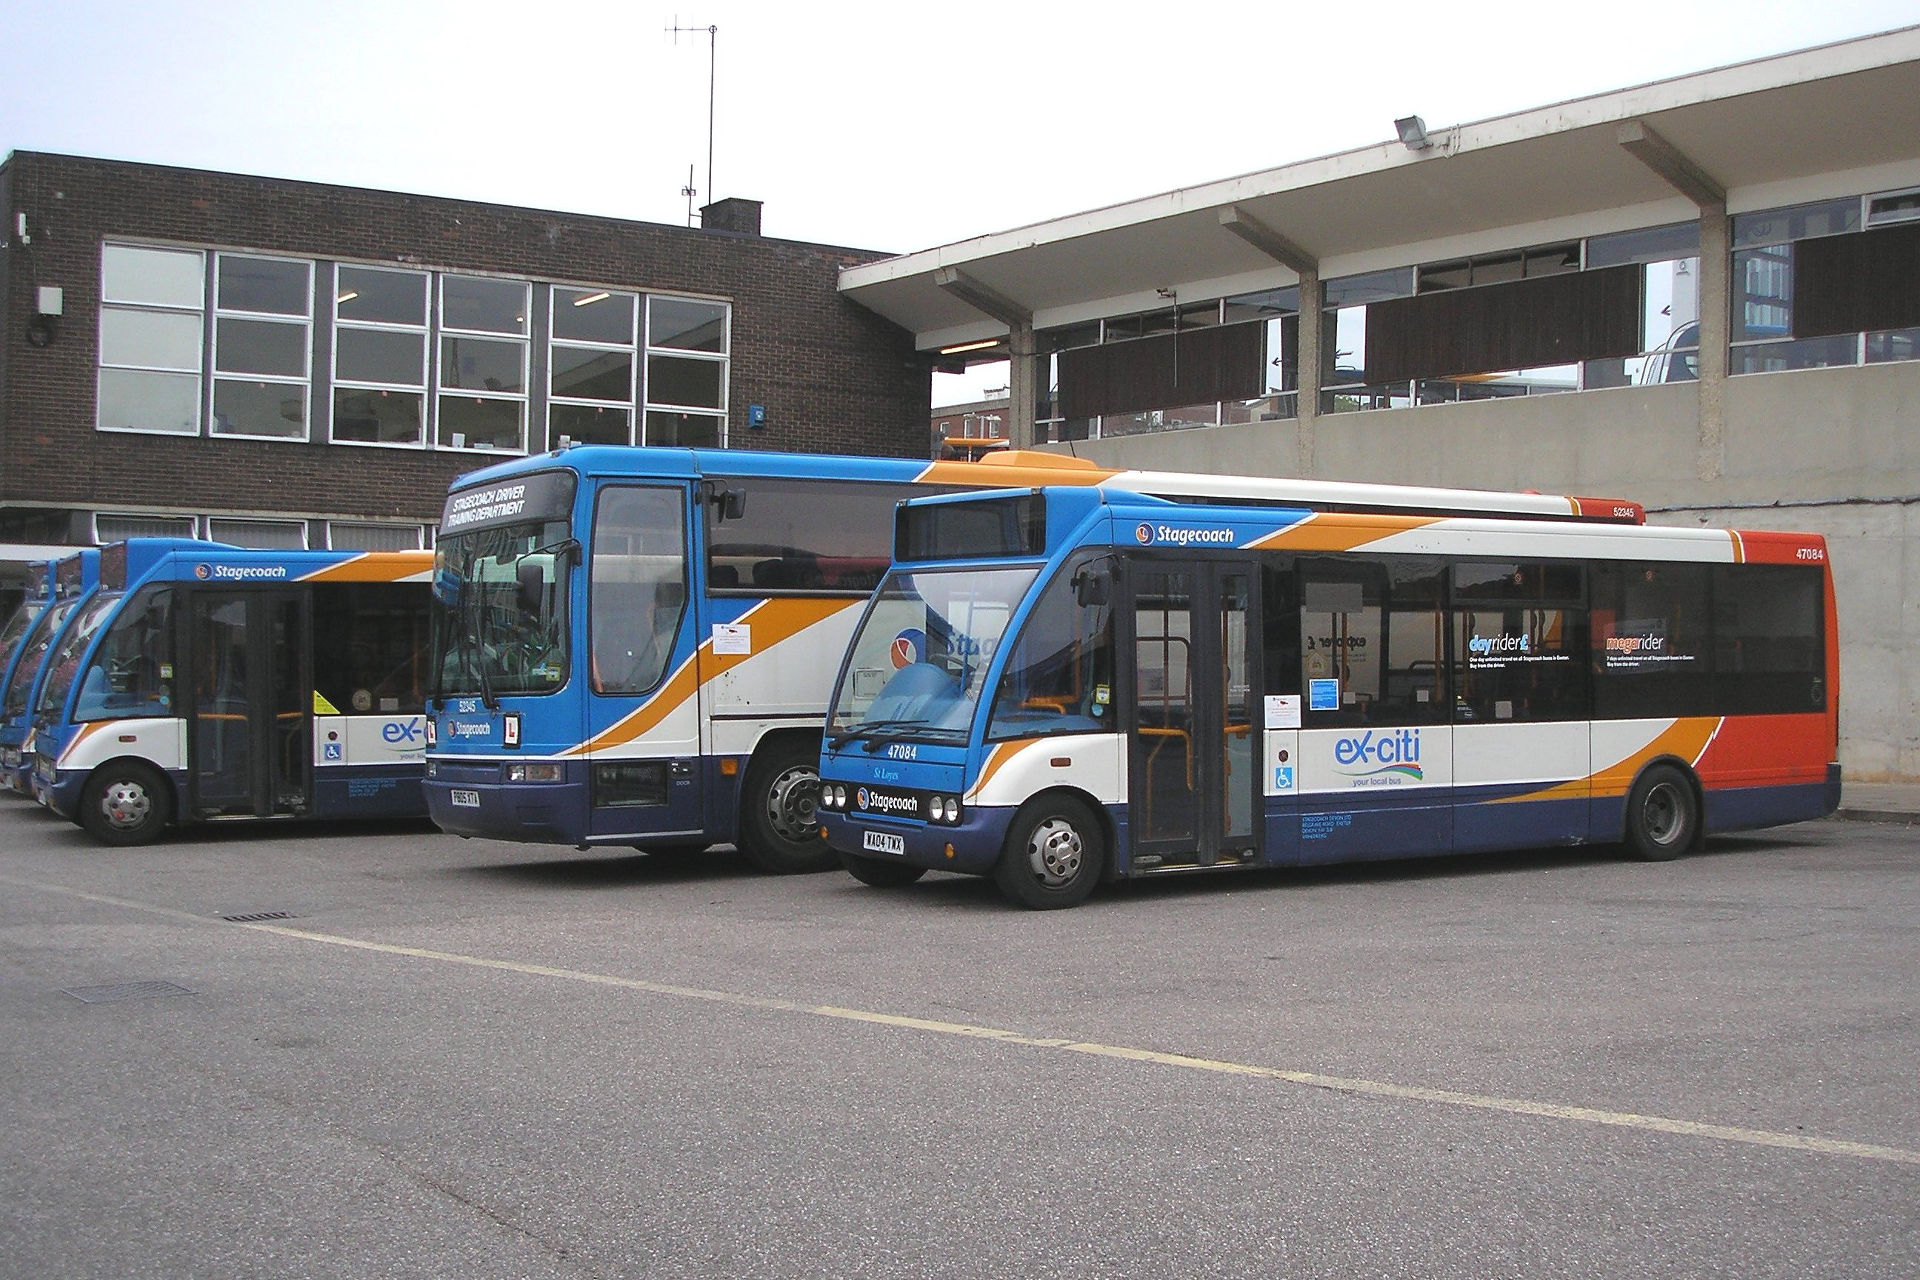 Buses in Exeter Bus Station. Credit: By Barry Lewis - Stagecoach To Exeter - 2, CC BY 2.0, https://commons.wikimedia.org/w/index.php?curid=27493886